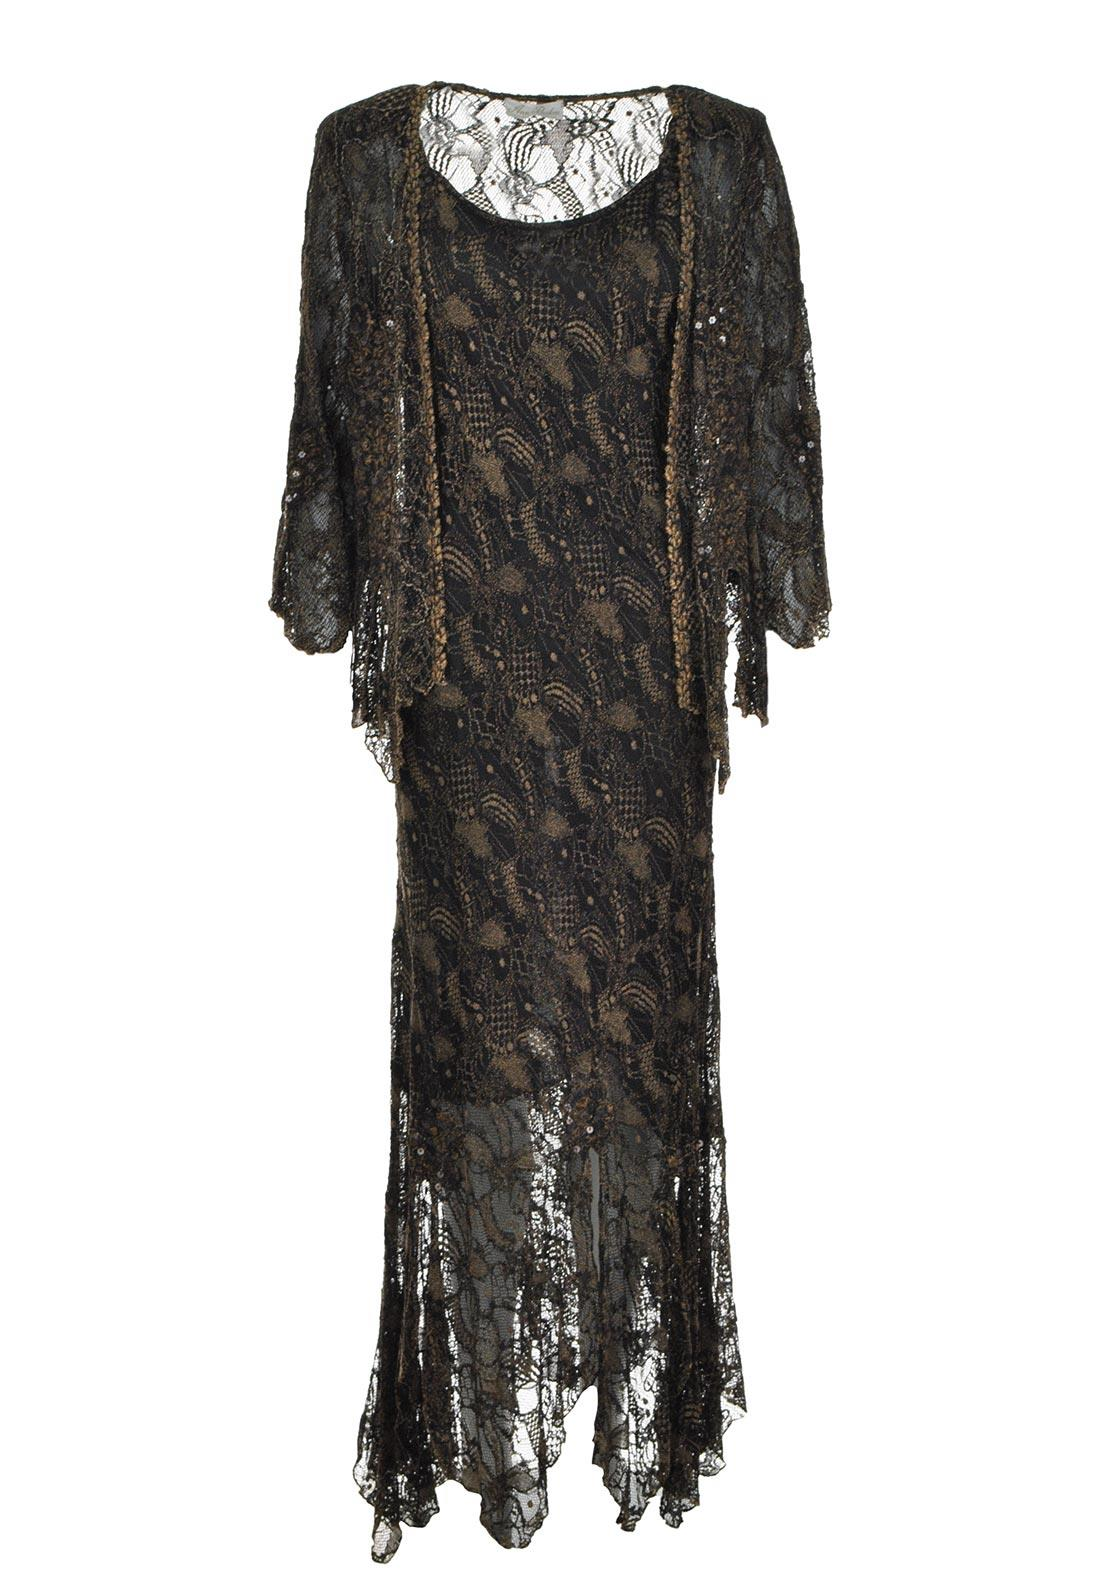 Ann Balon Lulu Lace Dress And Jacket Two Piece Outfit, Brown UK 12-14